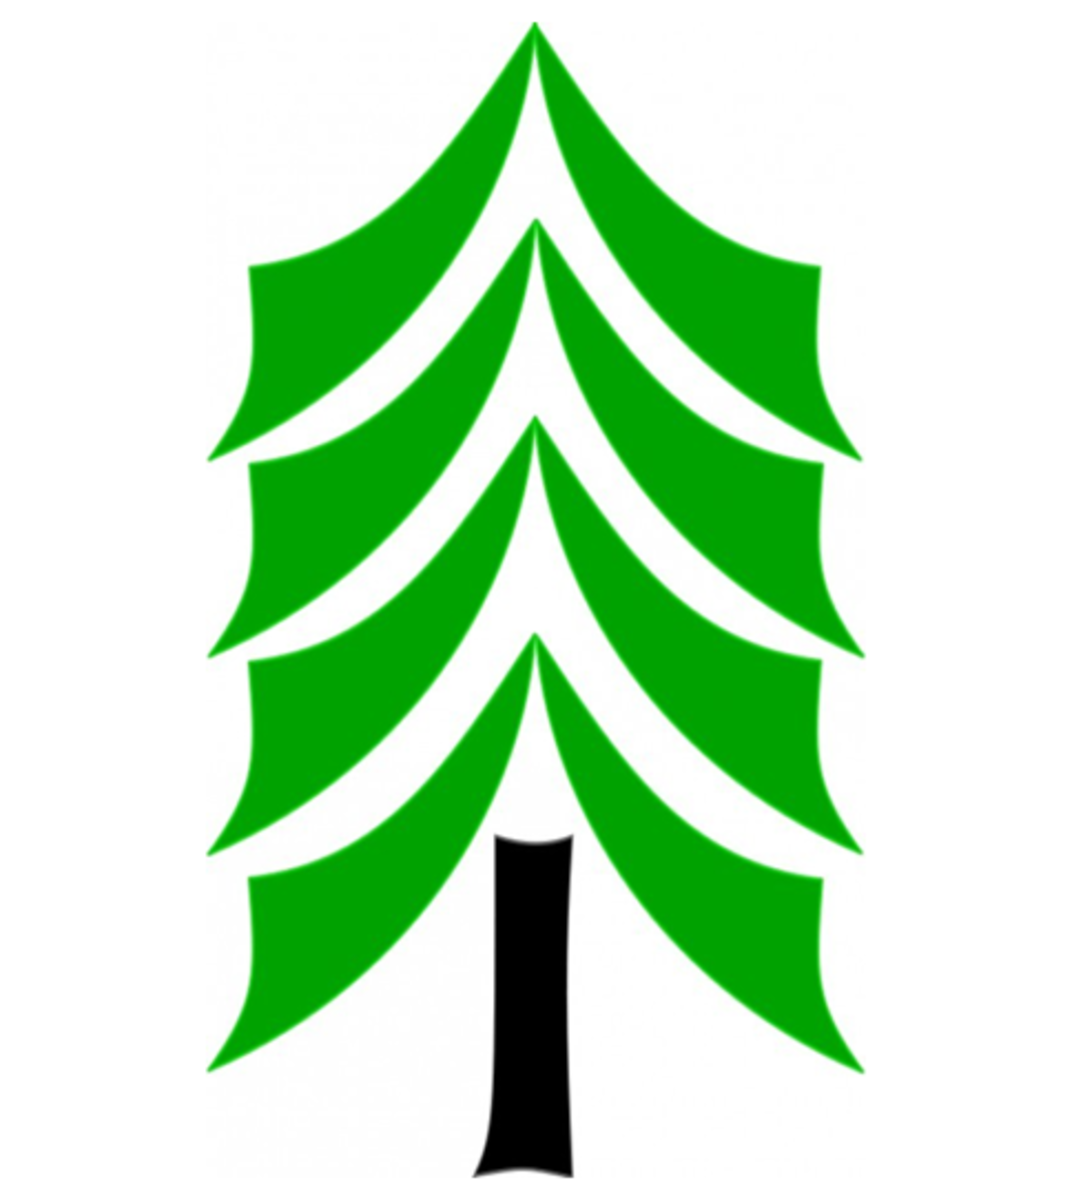 Geometric Pine Tree Logo